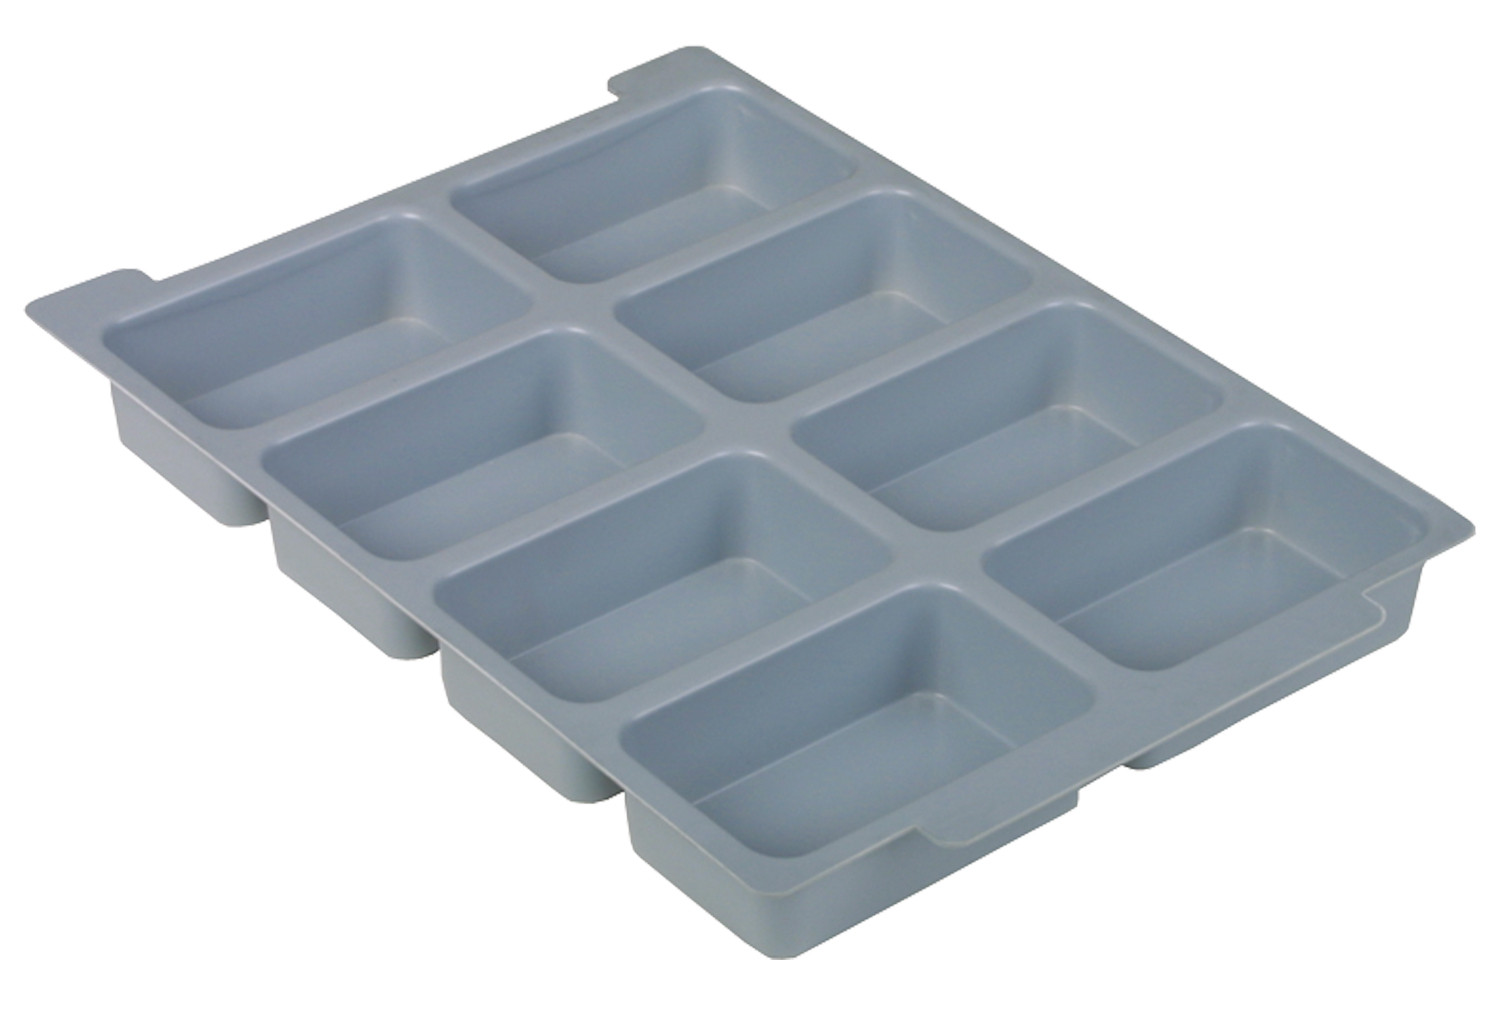 8 Compartment Insert For Gratnell Shallow Trays